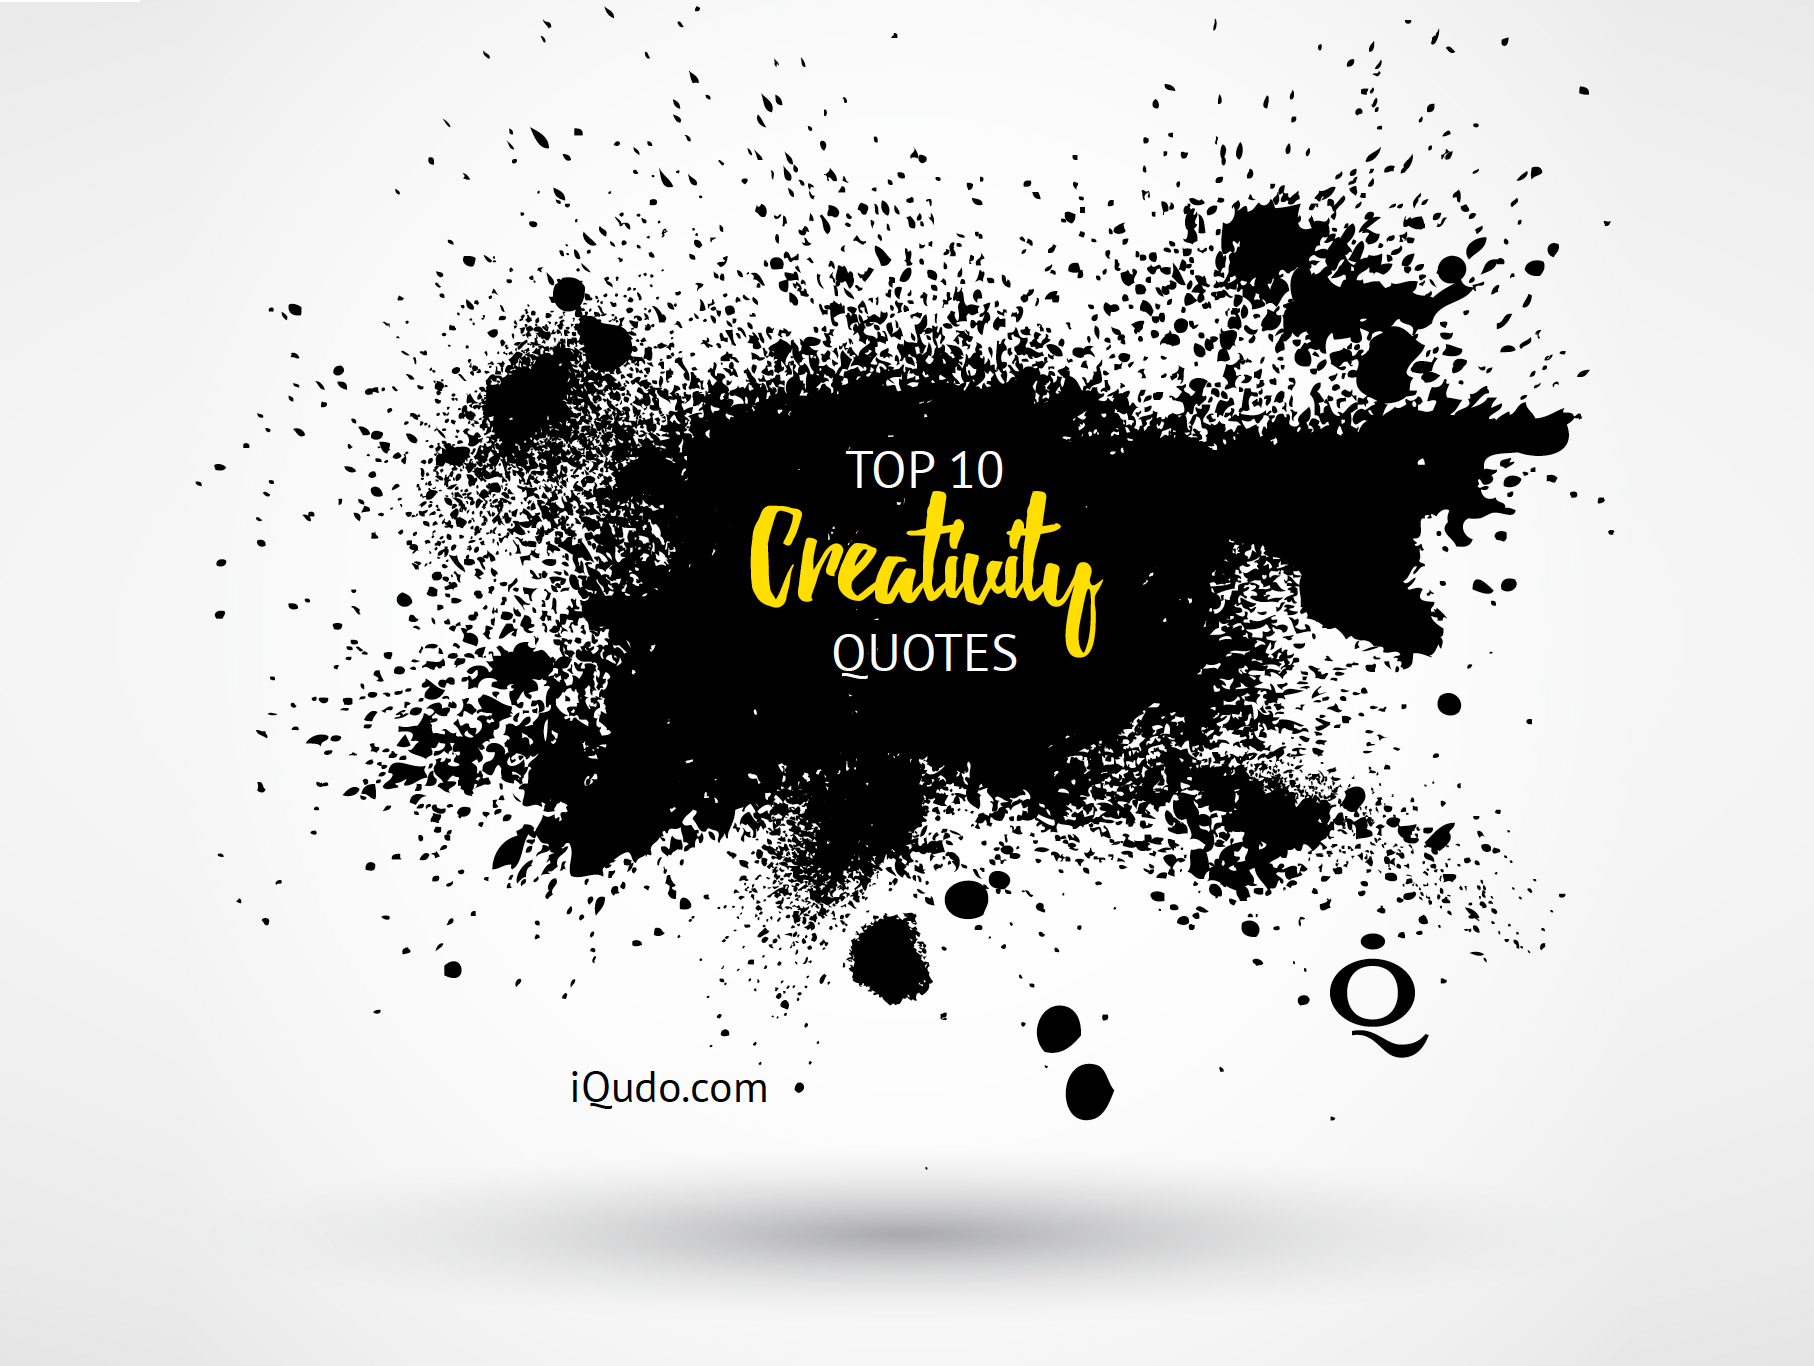 Top_Ten_Creativity_Quotes